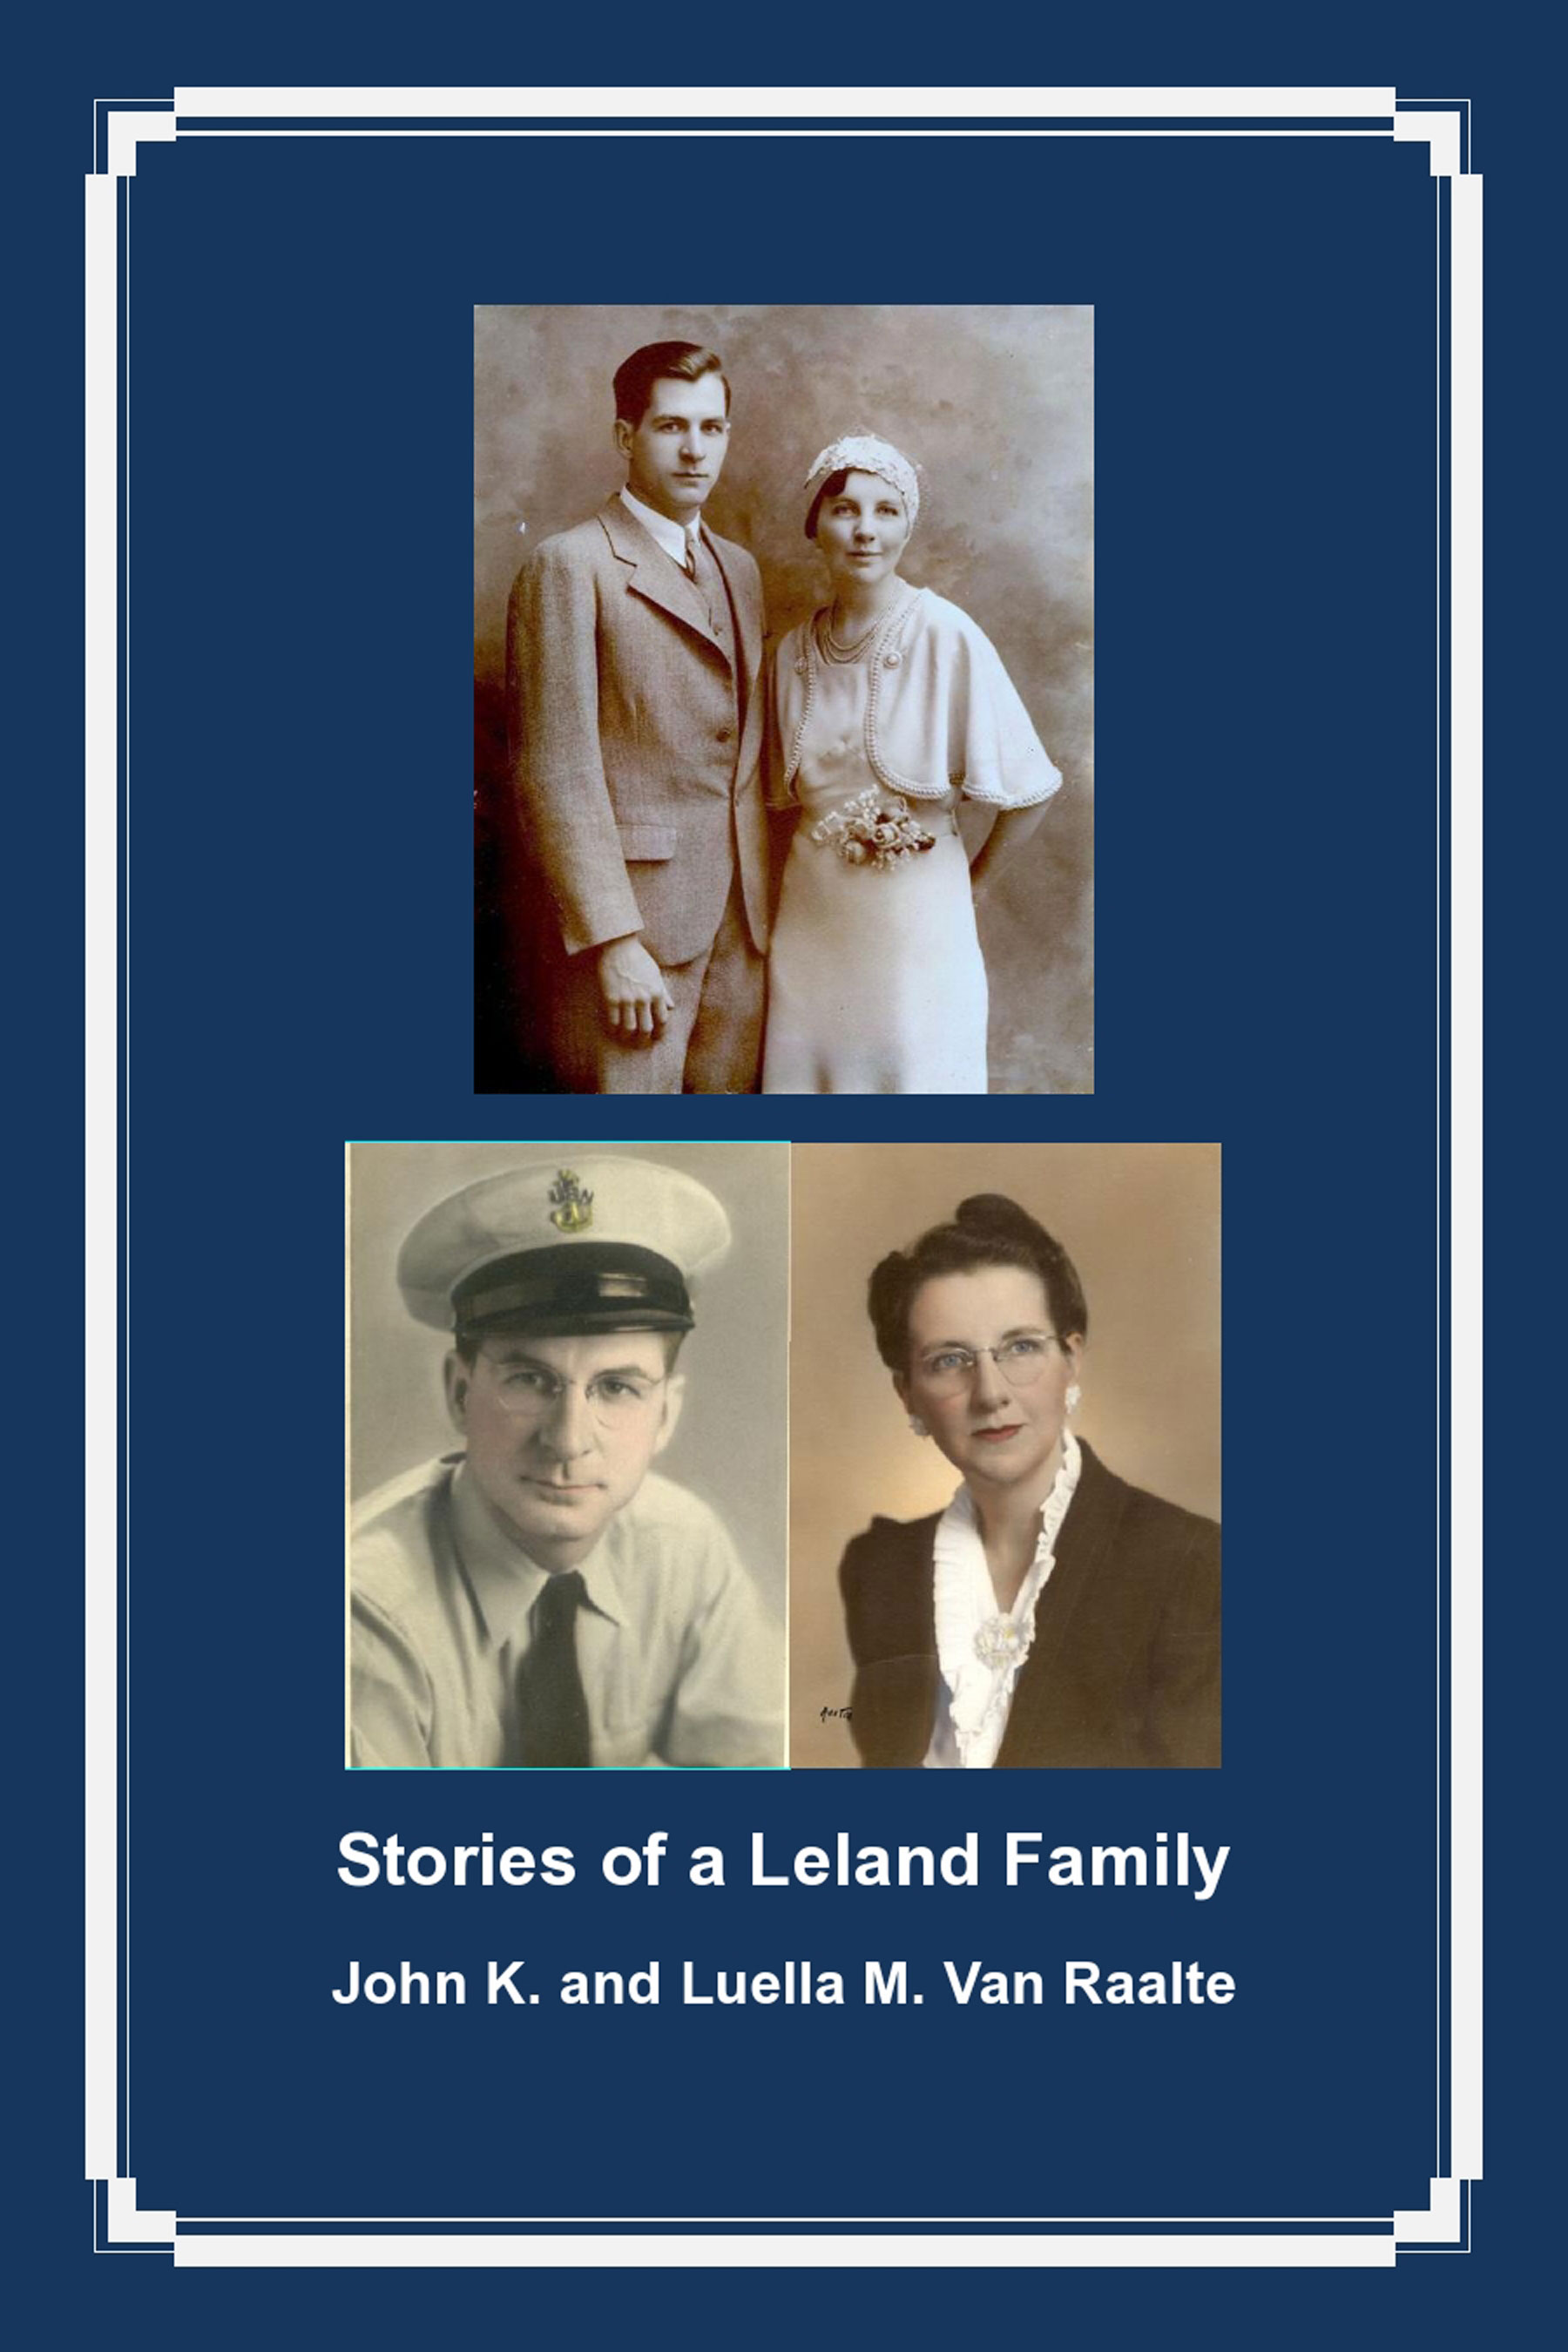 Photo of front cover of Stories of a Leland Family